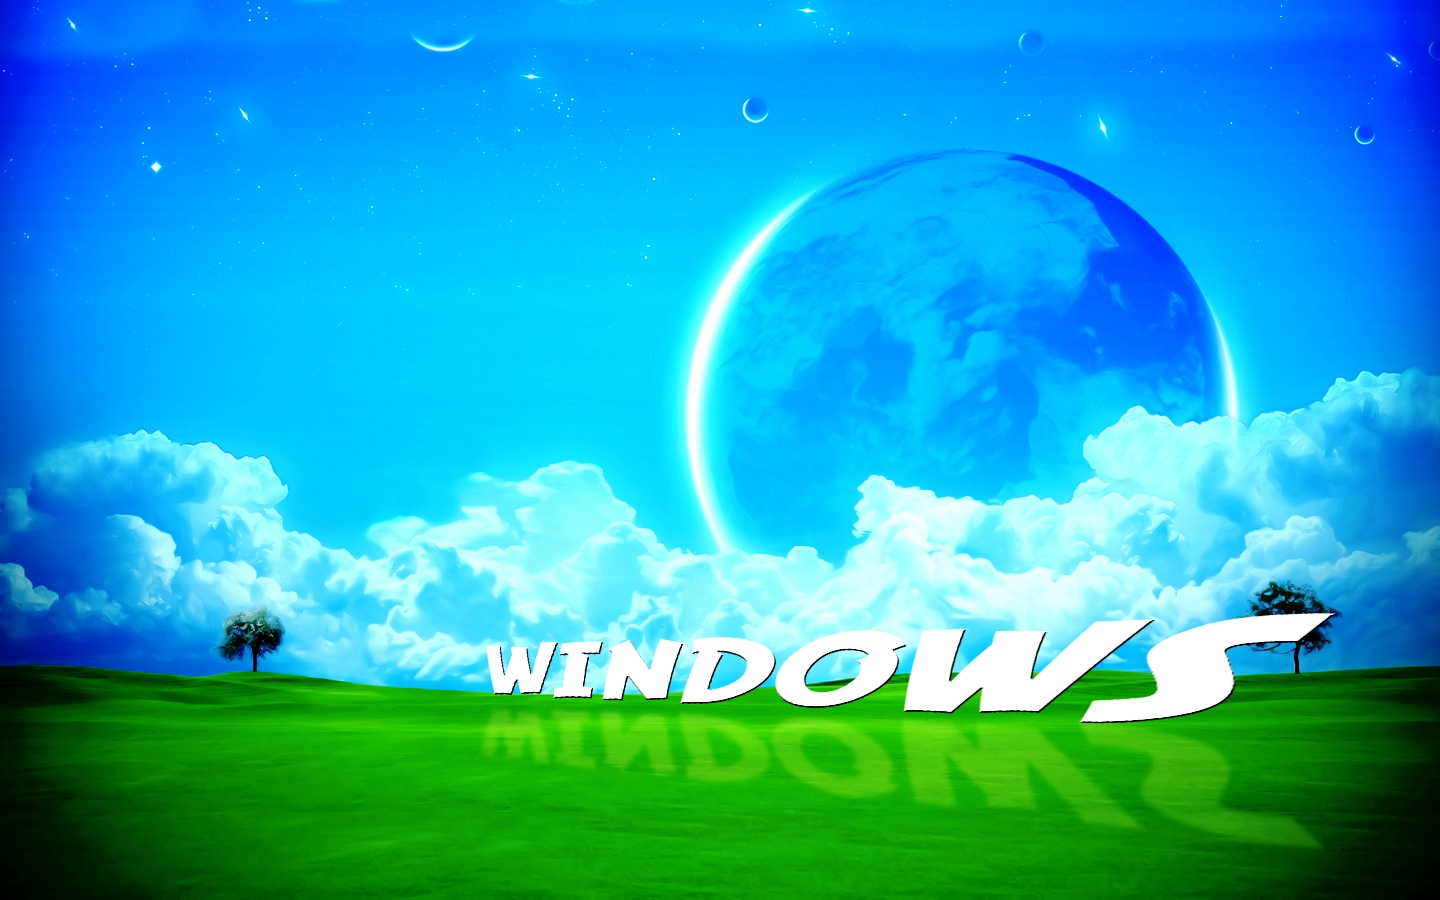 Animated Wallpapers Free Download For Xp